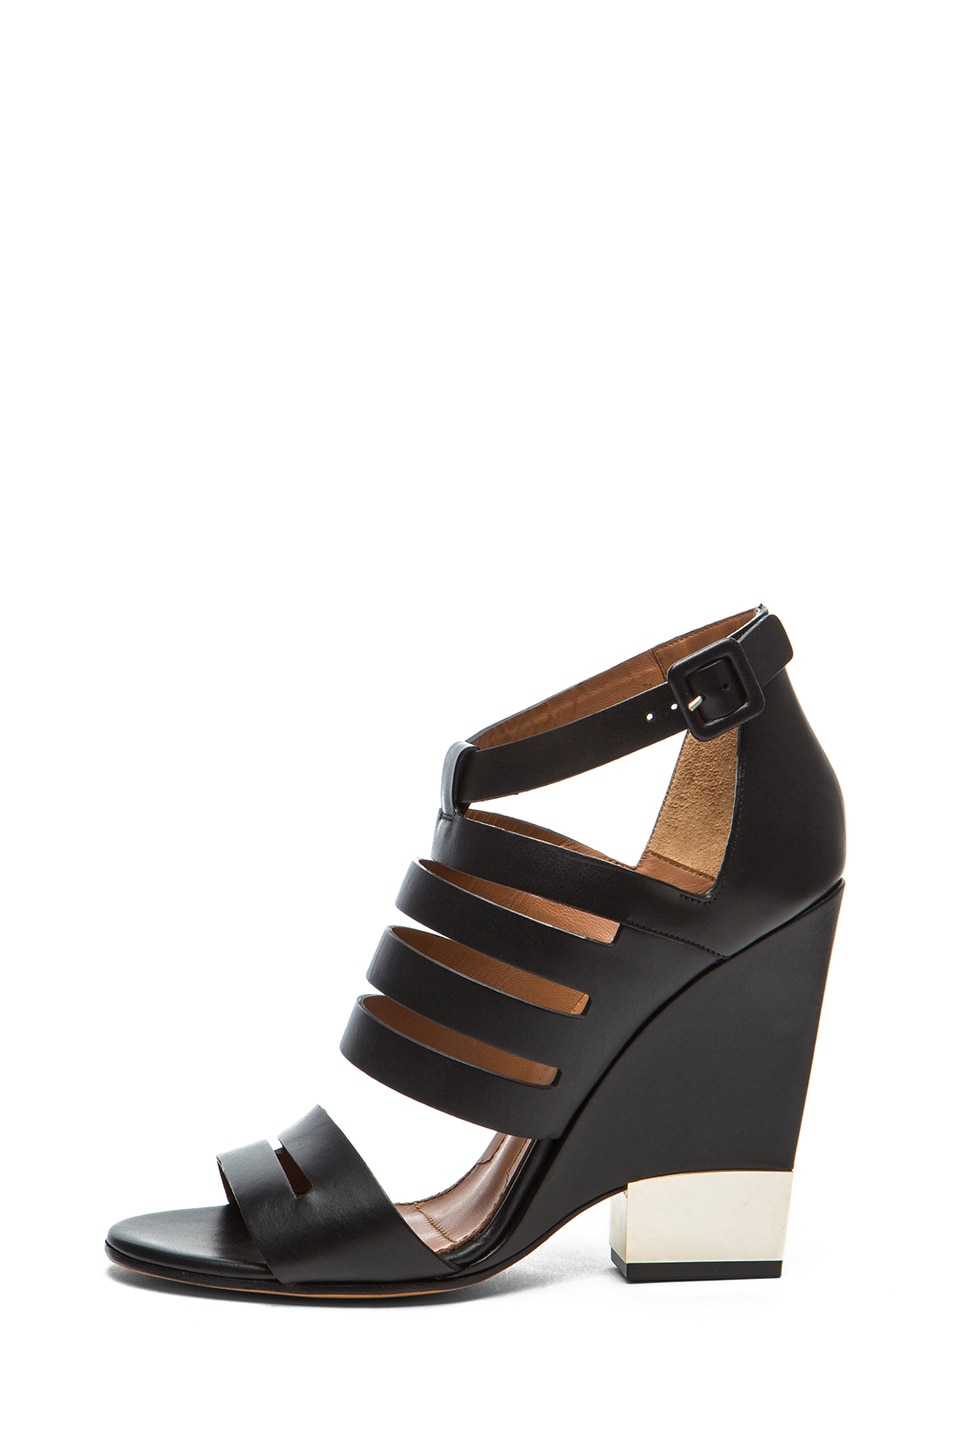 Image 1 of GIVENCHY New Wan Calfskin Leather Bondage Heels in Black